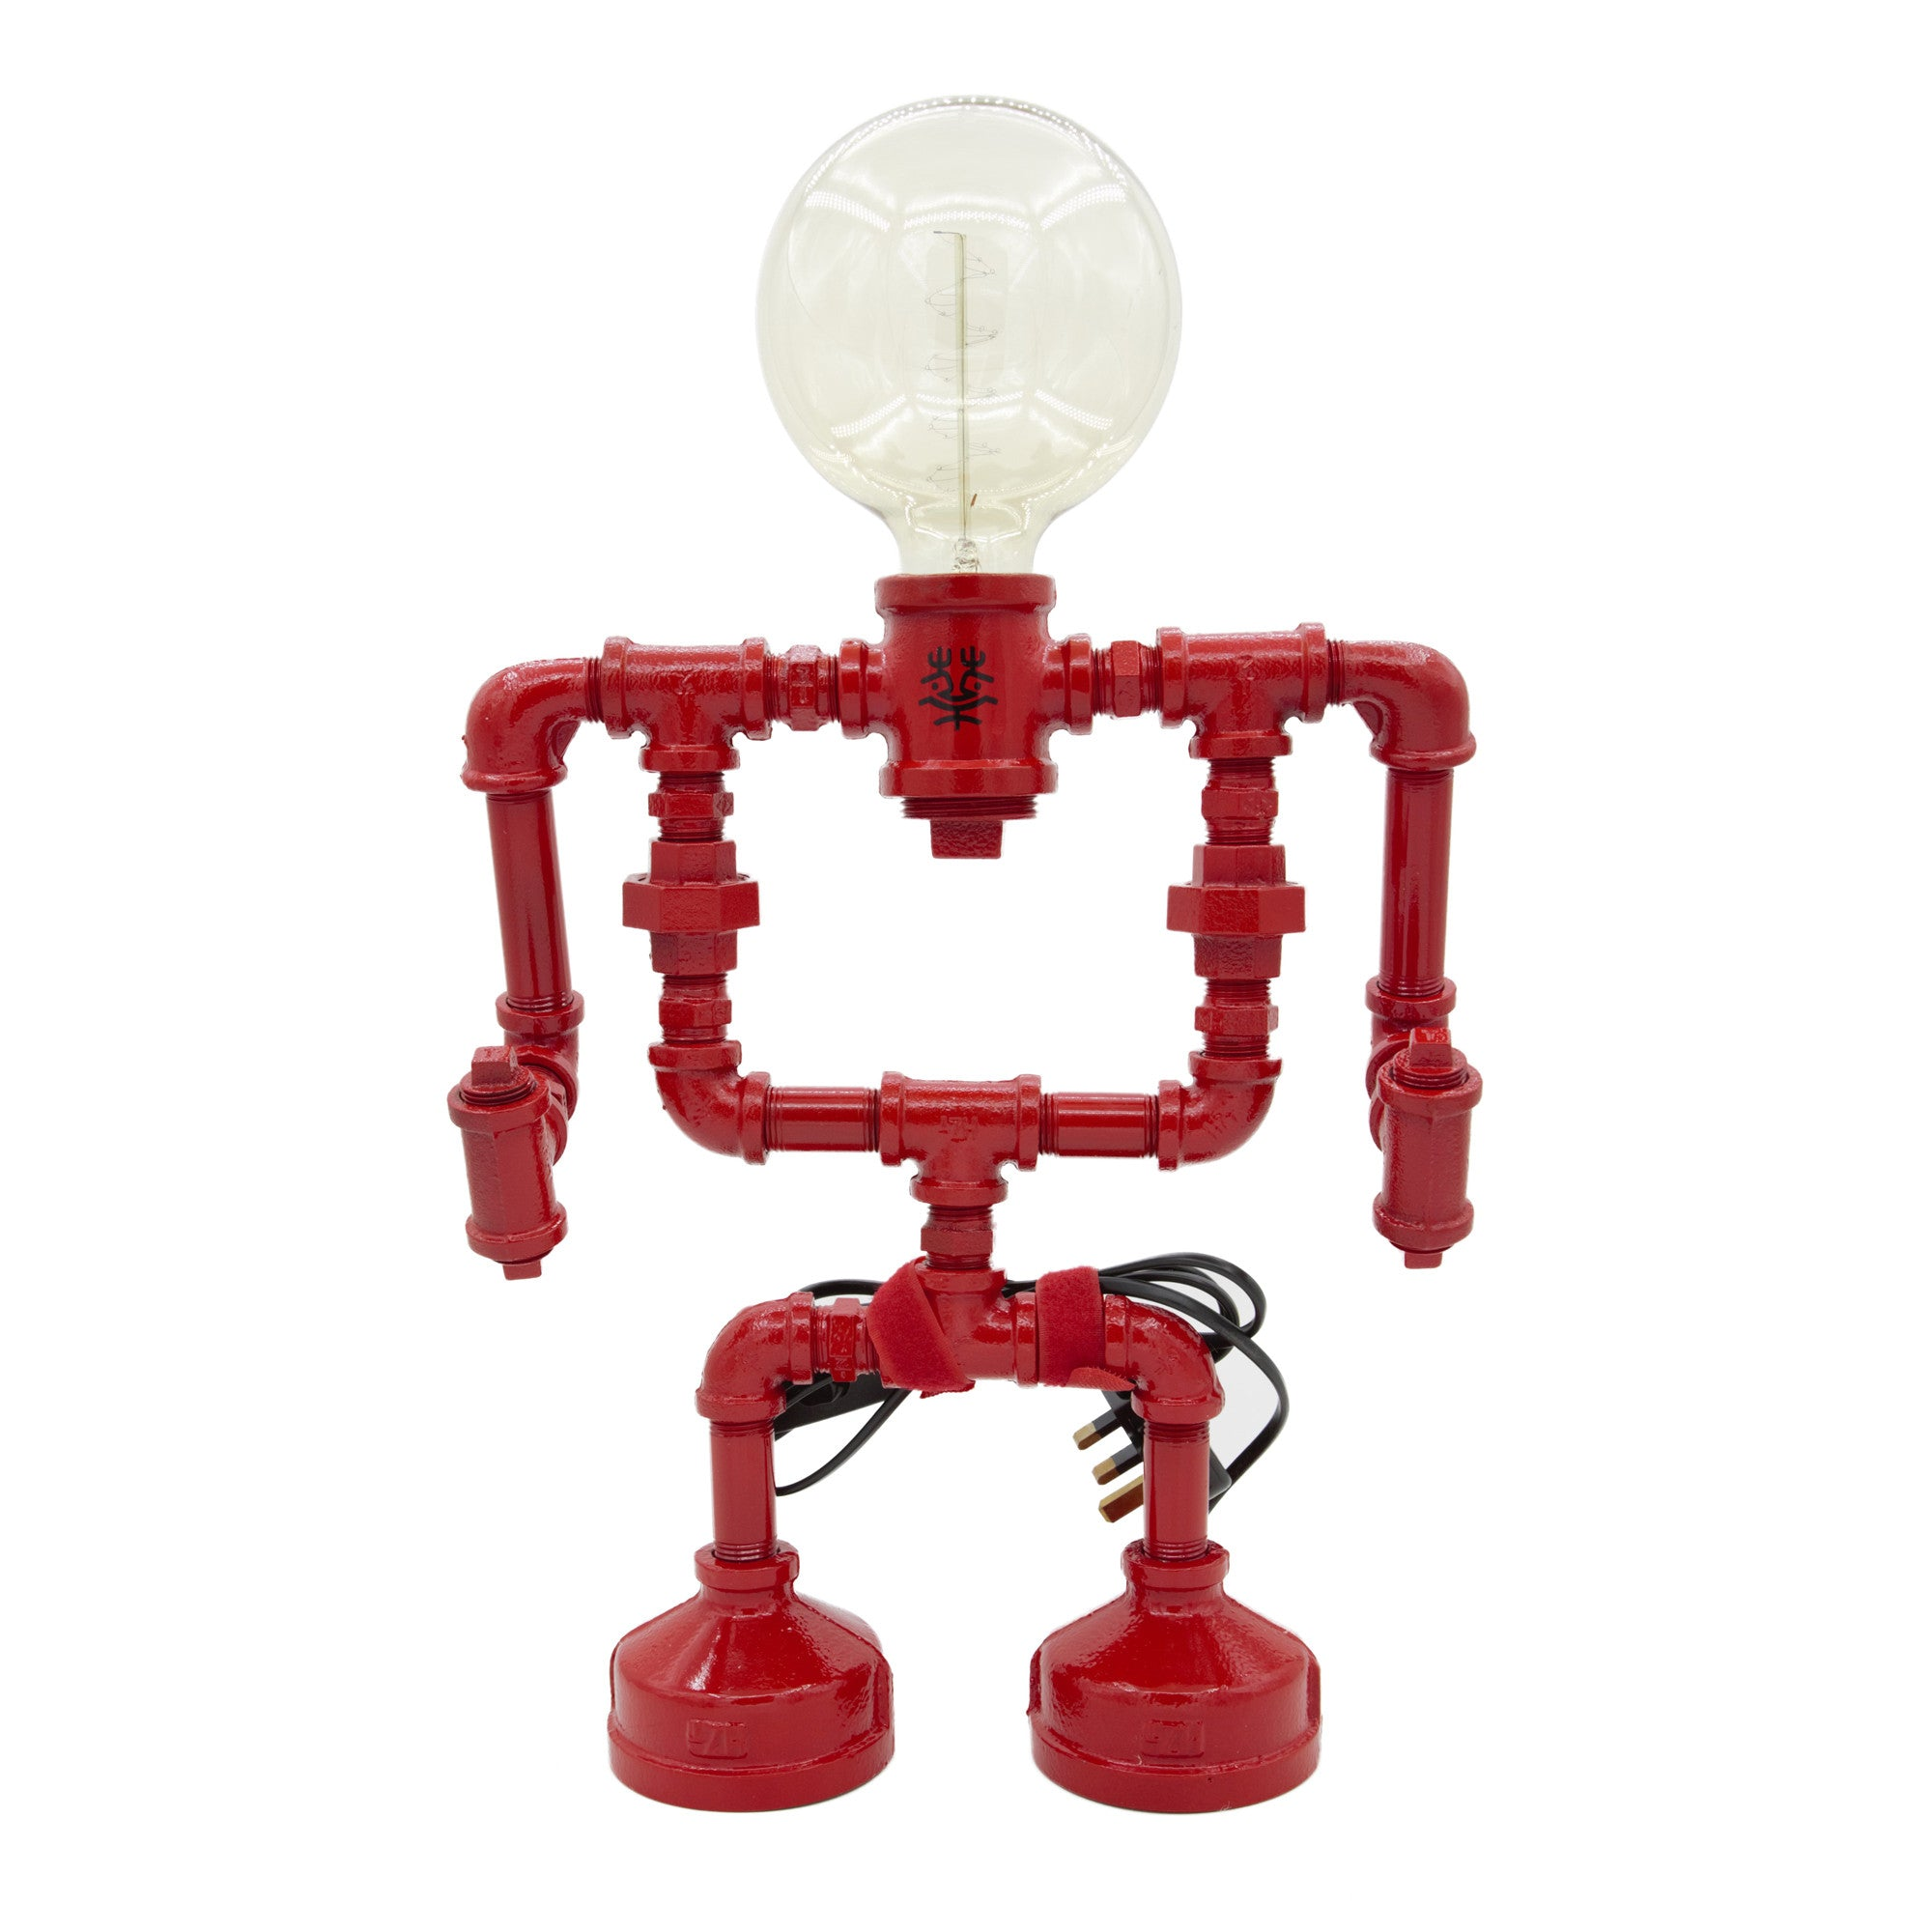 Touch Sensitive Robot Table Lamp - Large red